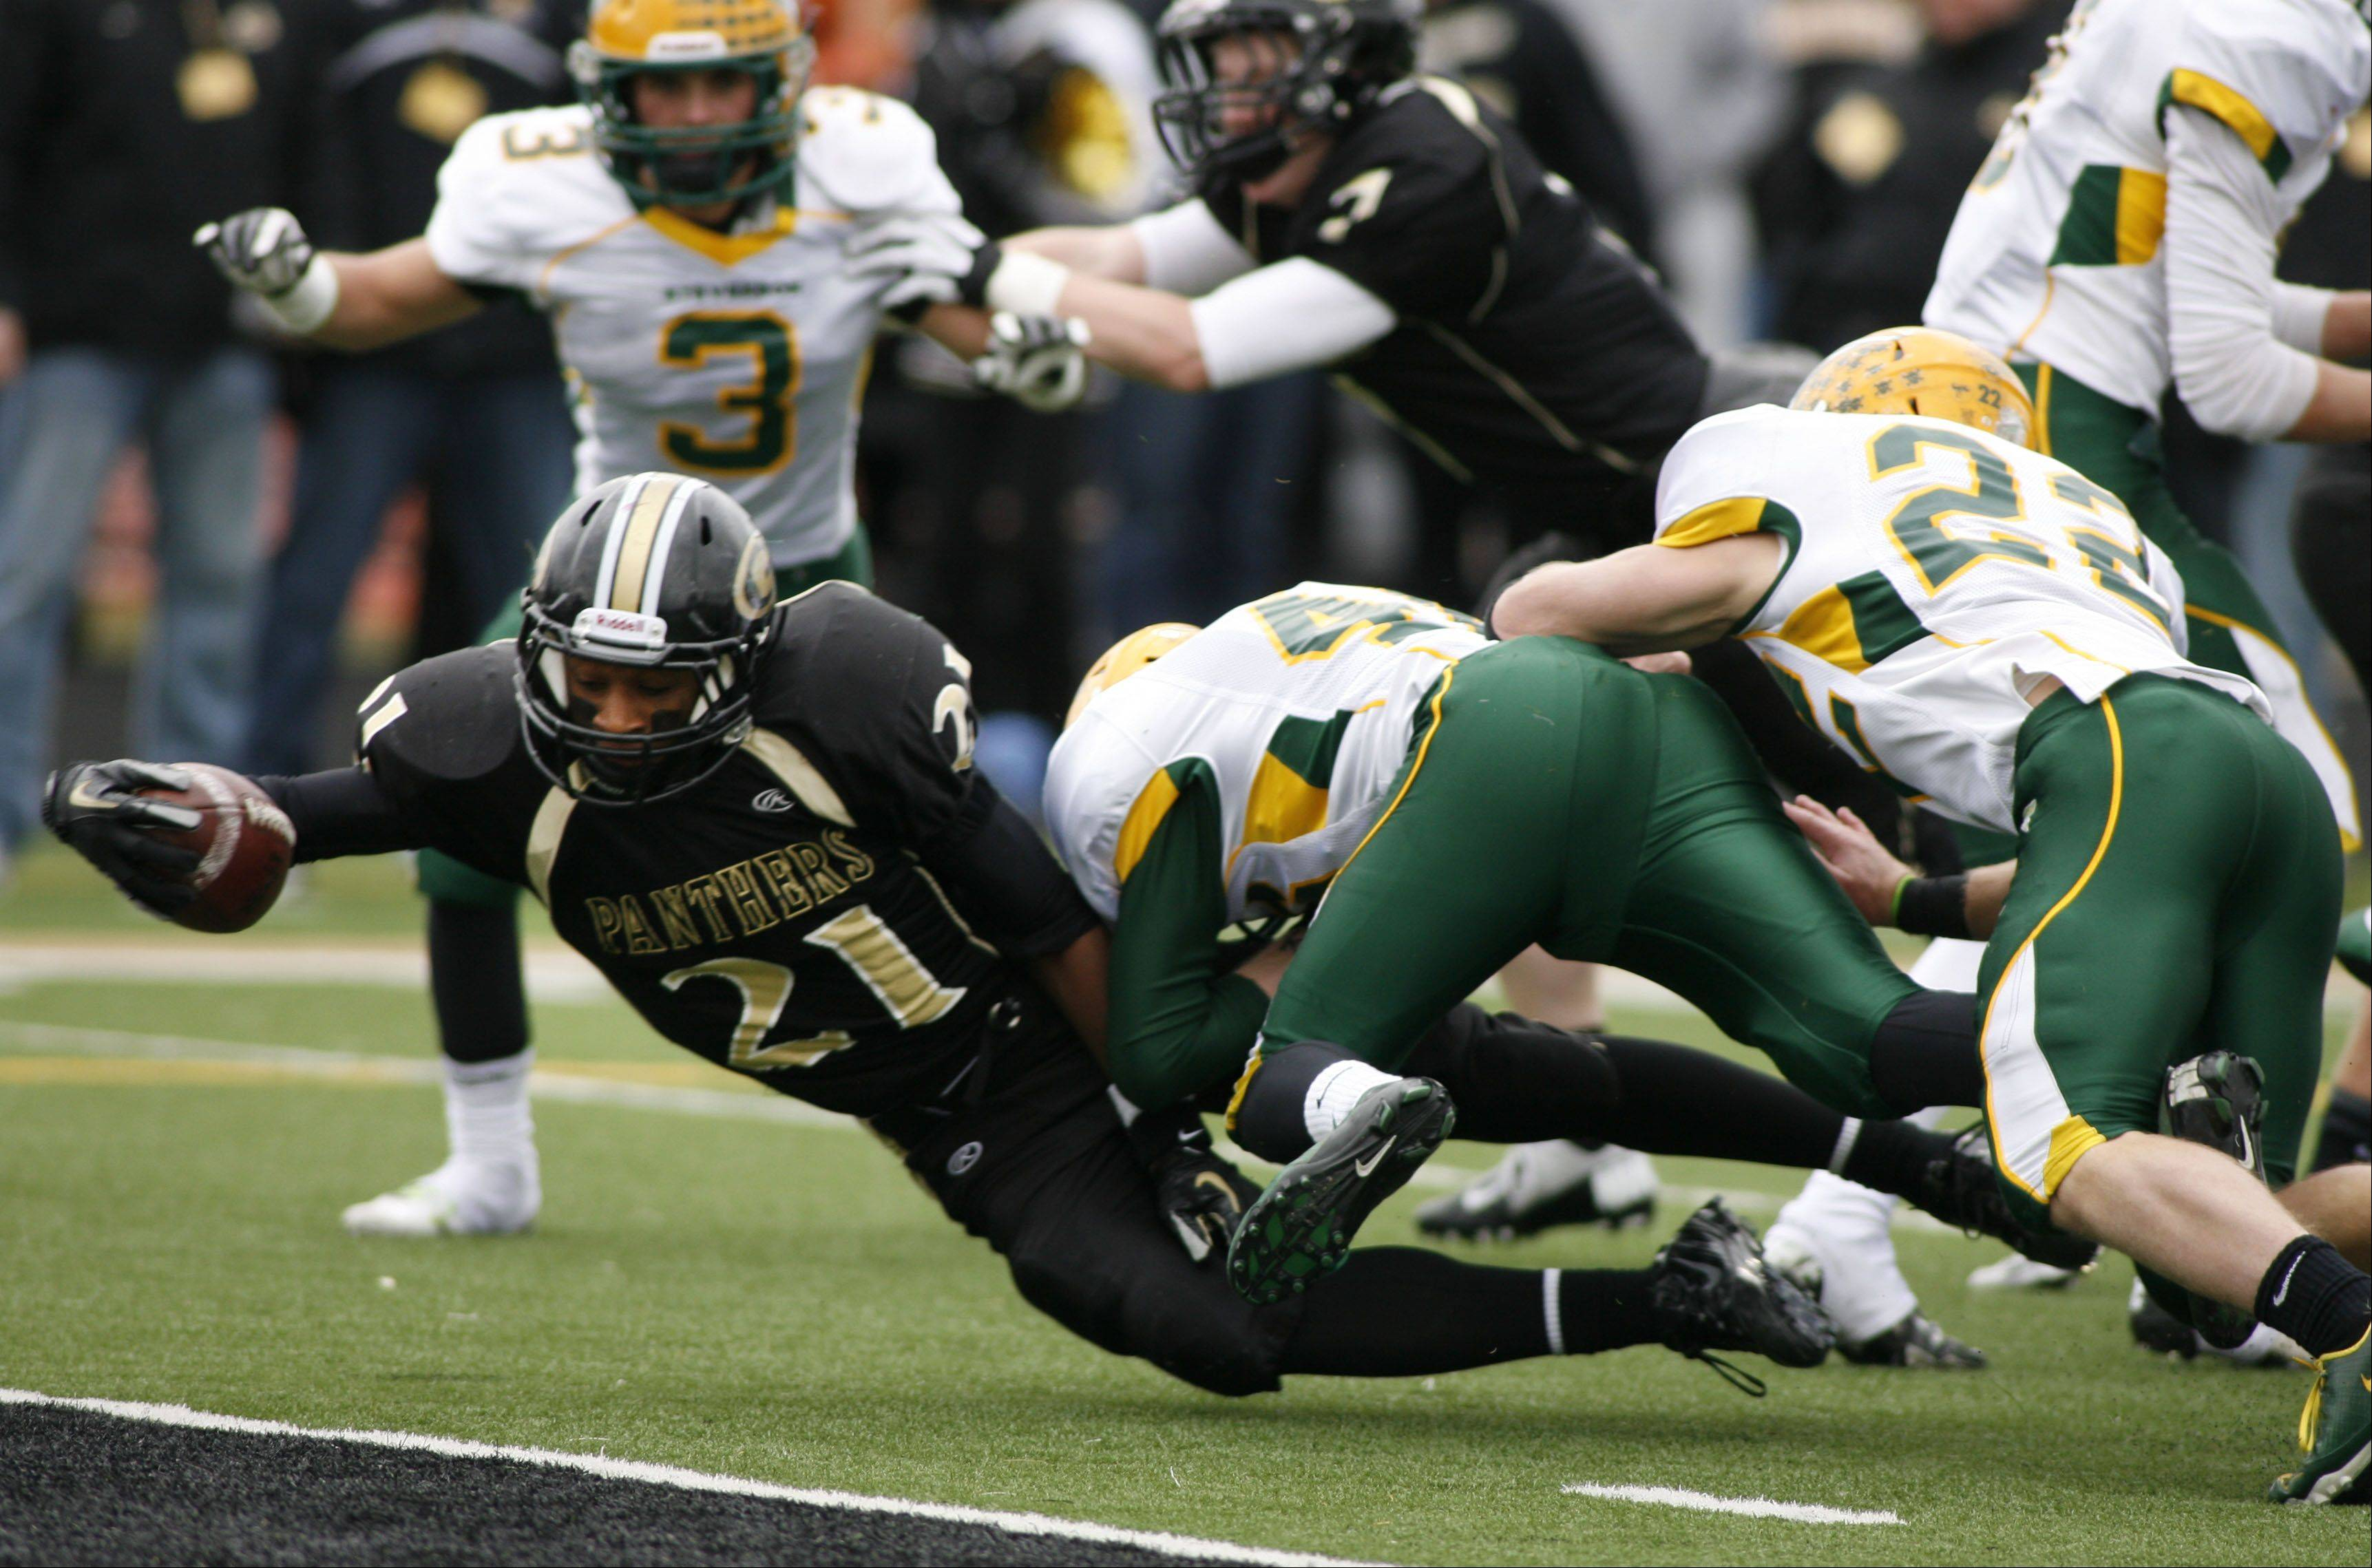 Glenbard North's Justin Jackson extends for a touchdown against Stevenson Saturday.